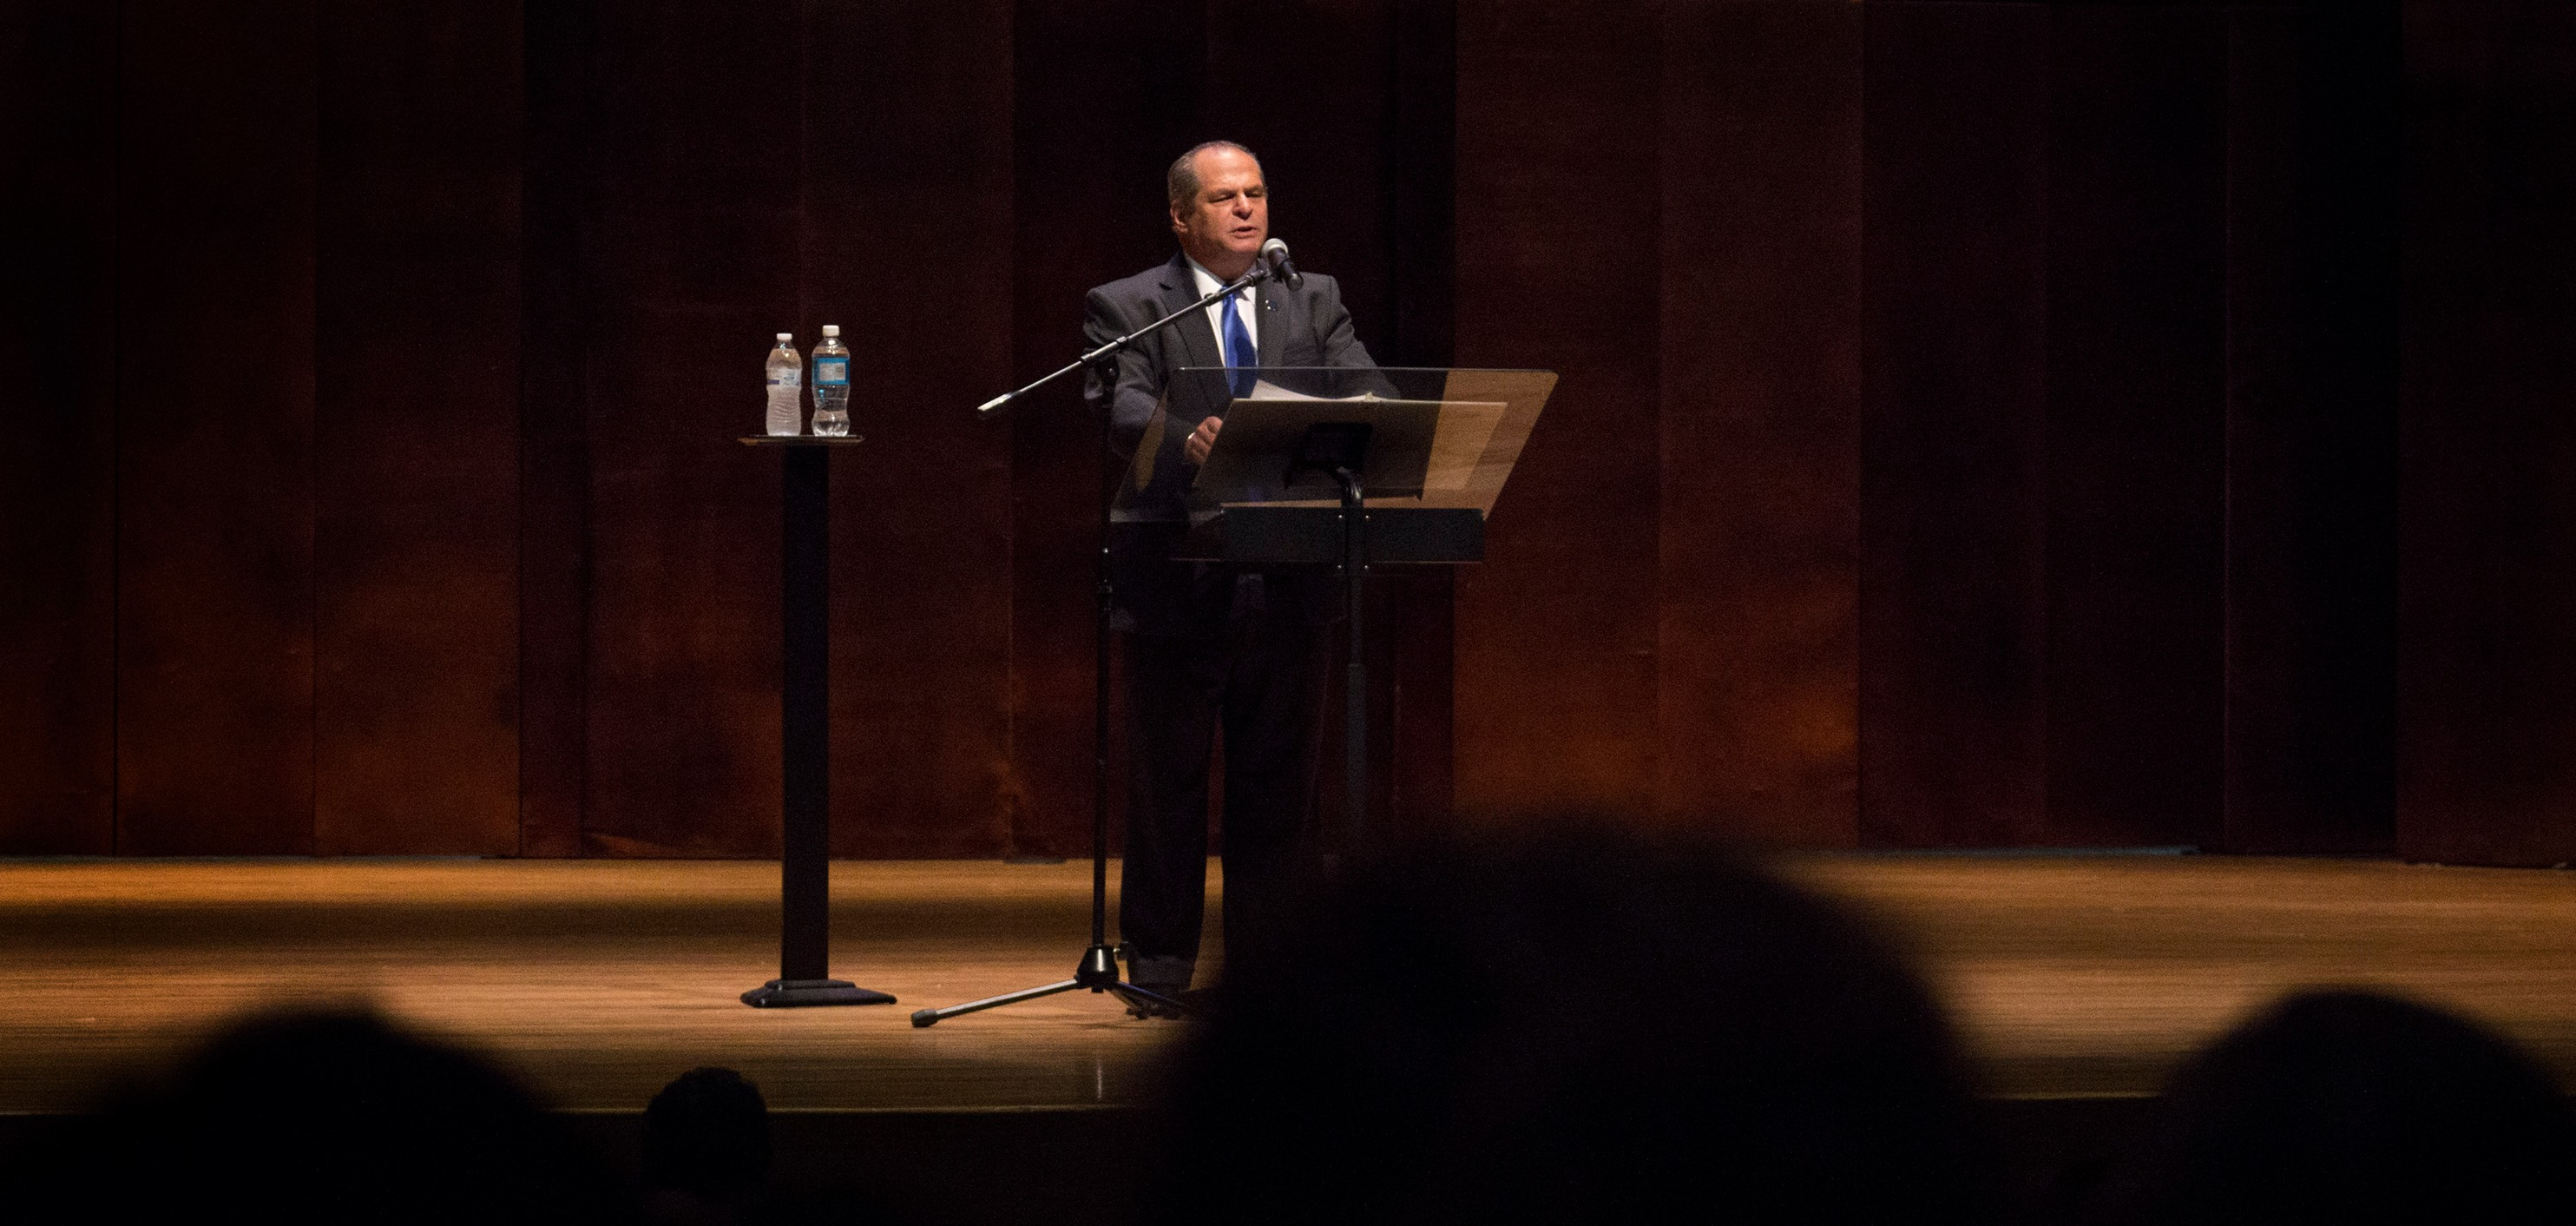 President David Glassman speaks of the negative impact on Eastern's reserve funds due to low enrollment and the state's inability to pass a budget this past fiscal year during the State of the University Address in the Dvorak Concert Hall of the Doudna Fine Arts Center Wednesday.